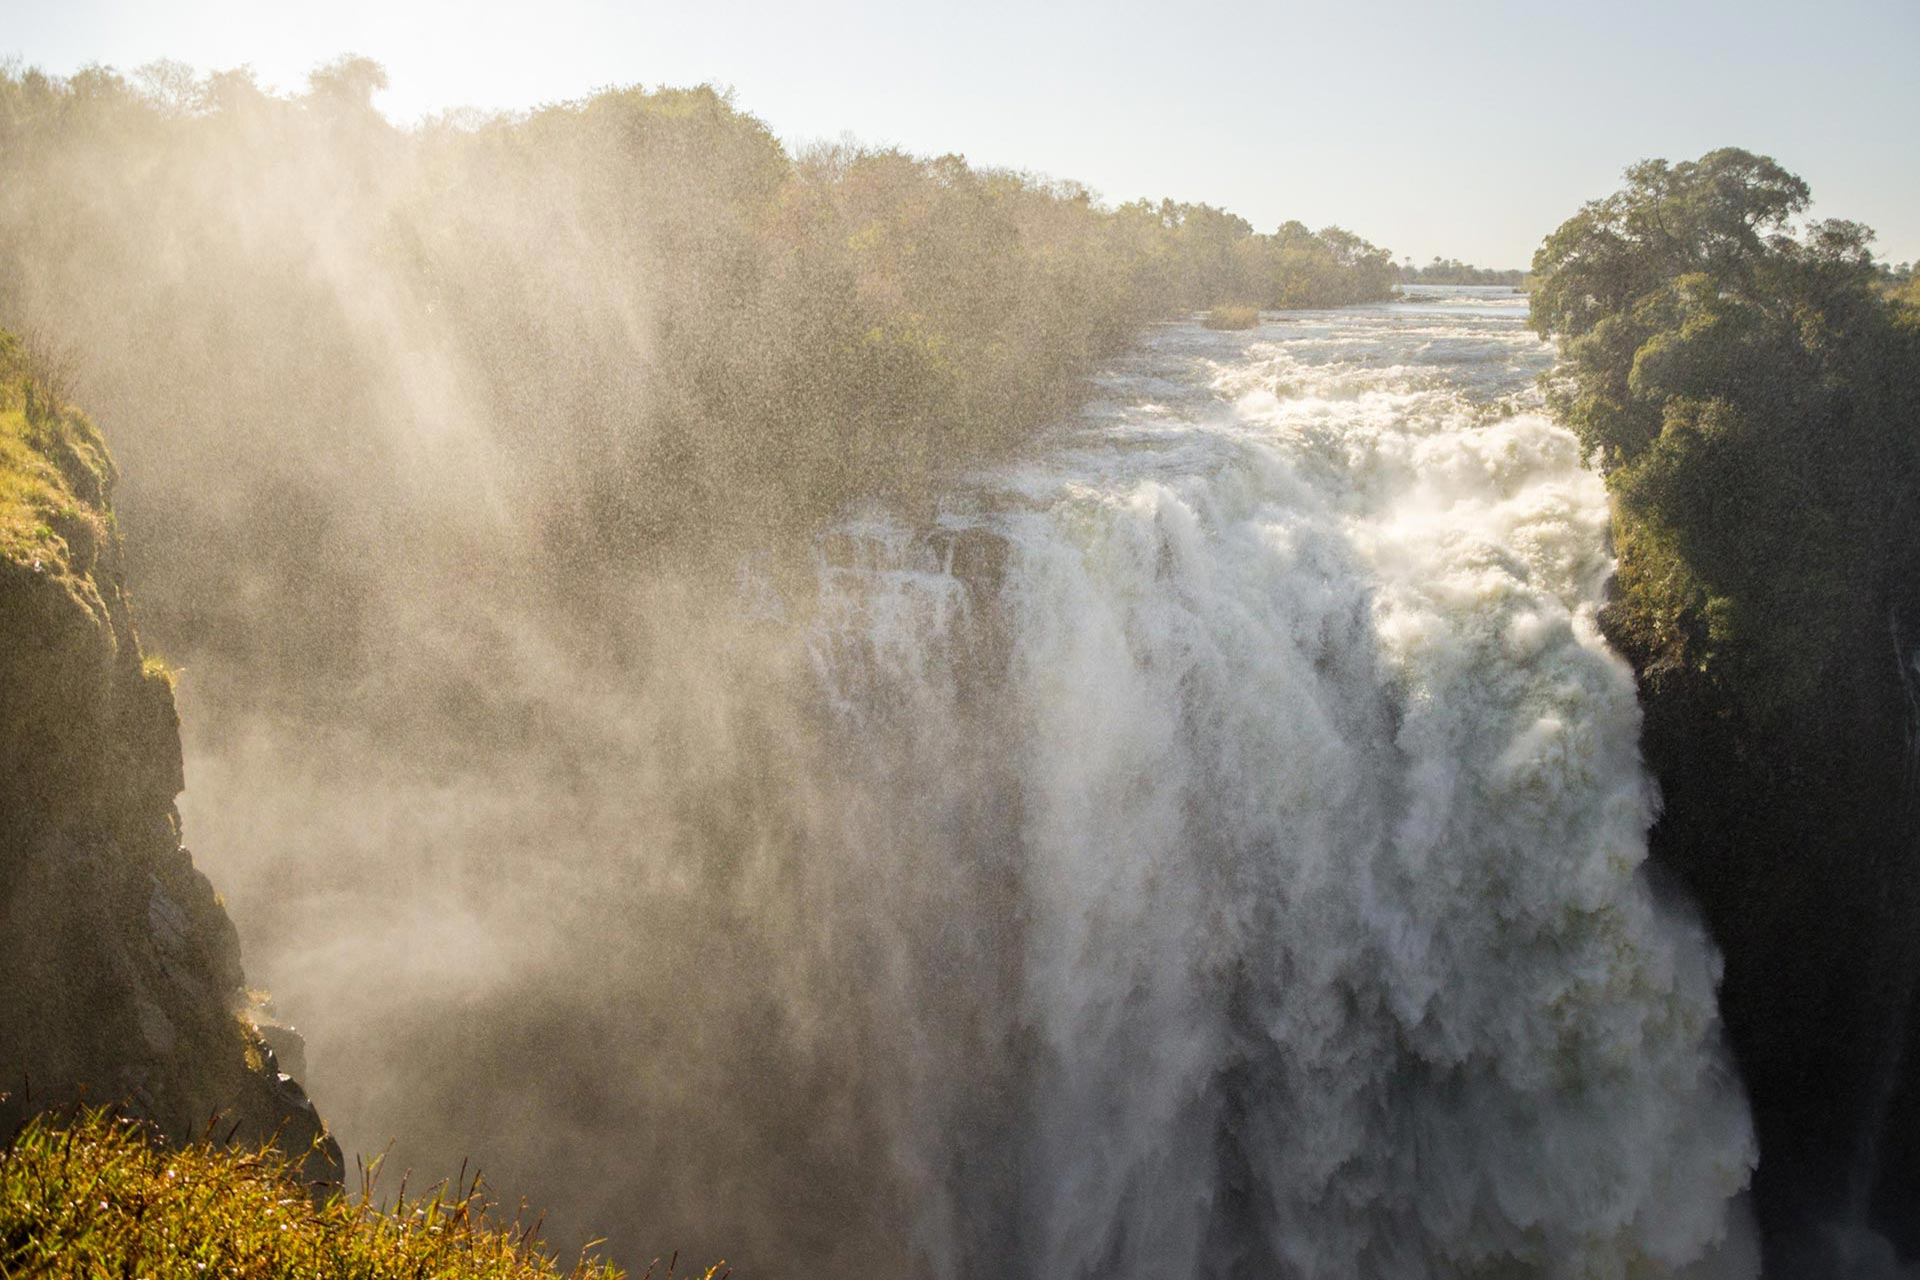 Tour & Safari Destination - Zimbabwe - Of ancient ruins and wild places